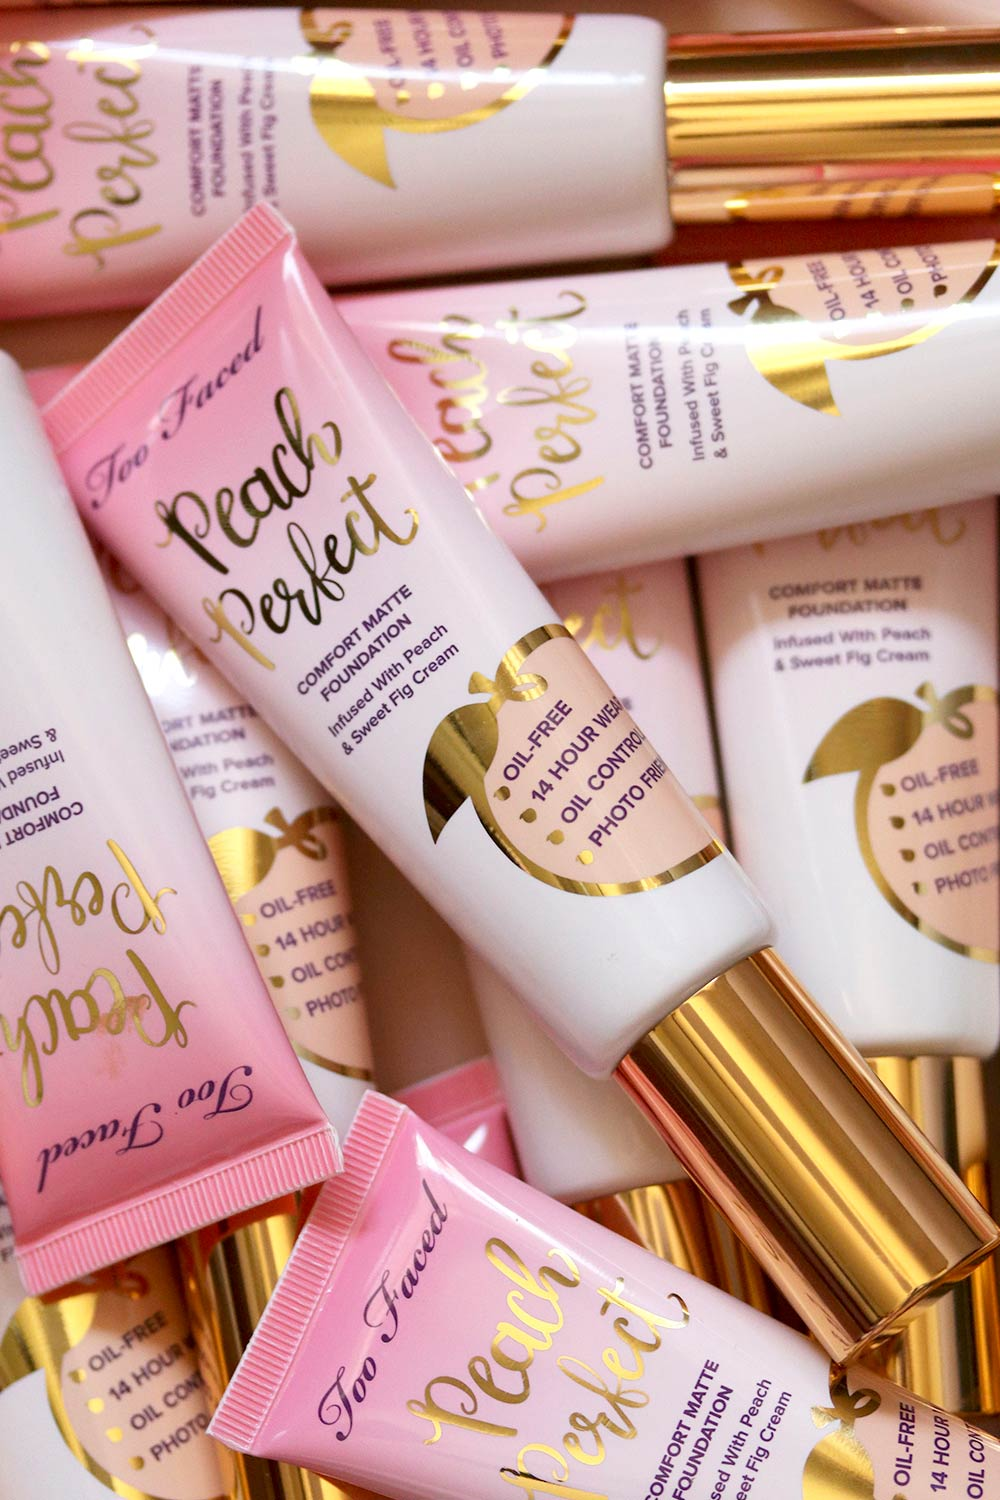 Too Faced Peach Perfect Comfort Matte